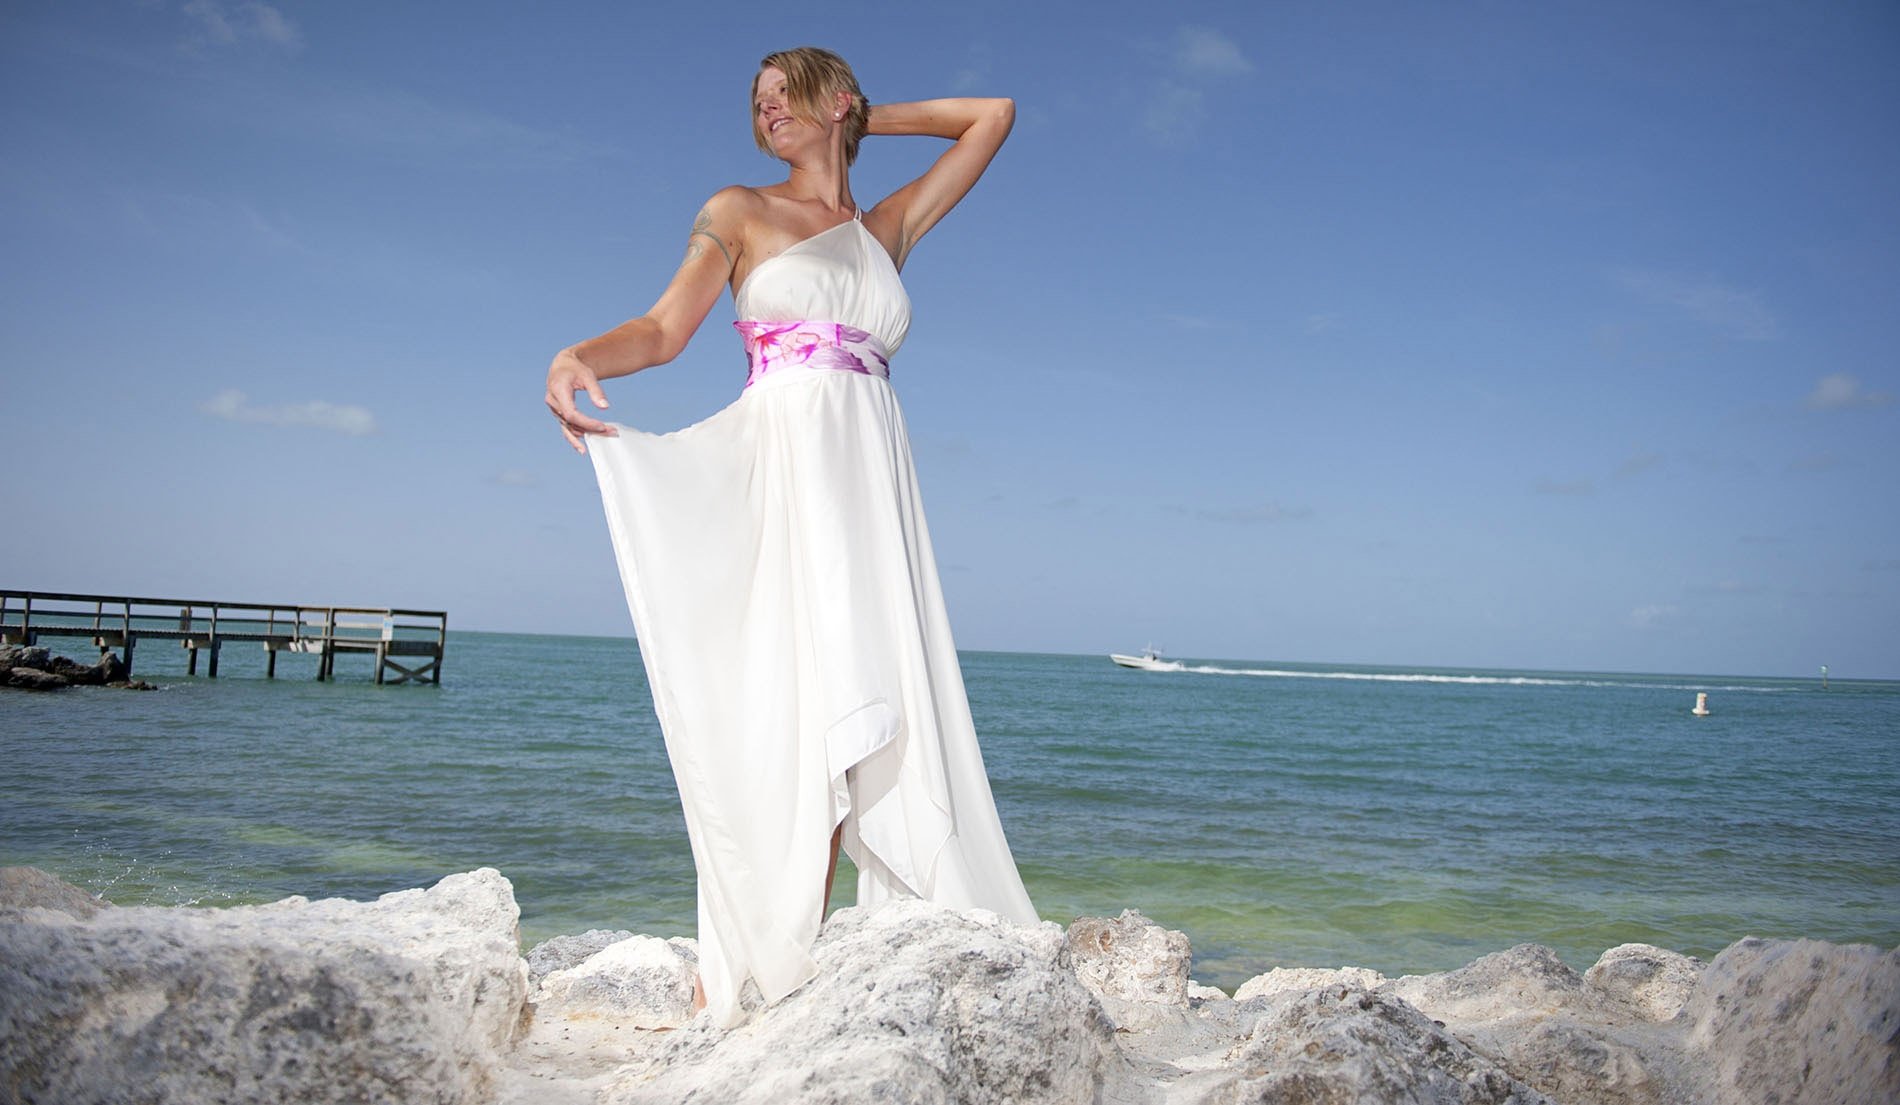 Asymmetrical Sash Second Marriage Weeding Dresses Beach - Veronica - Look 8 front